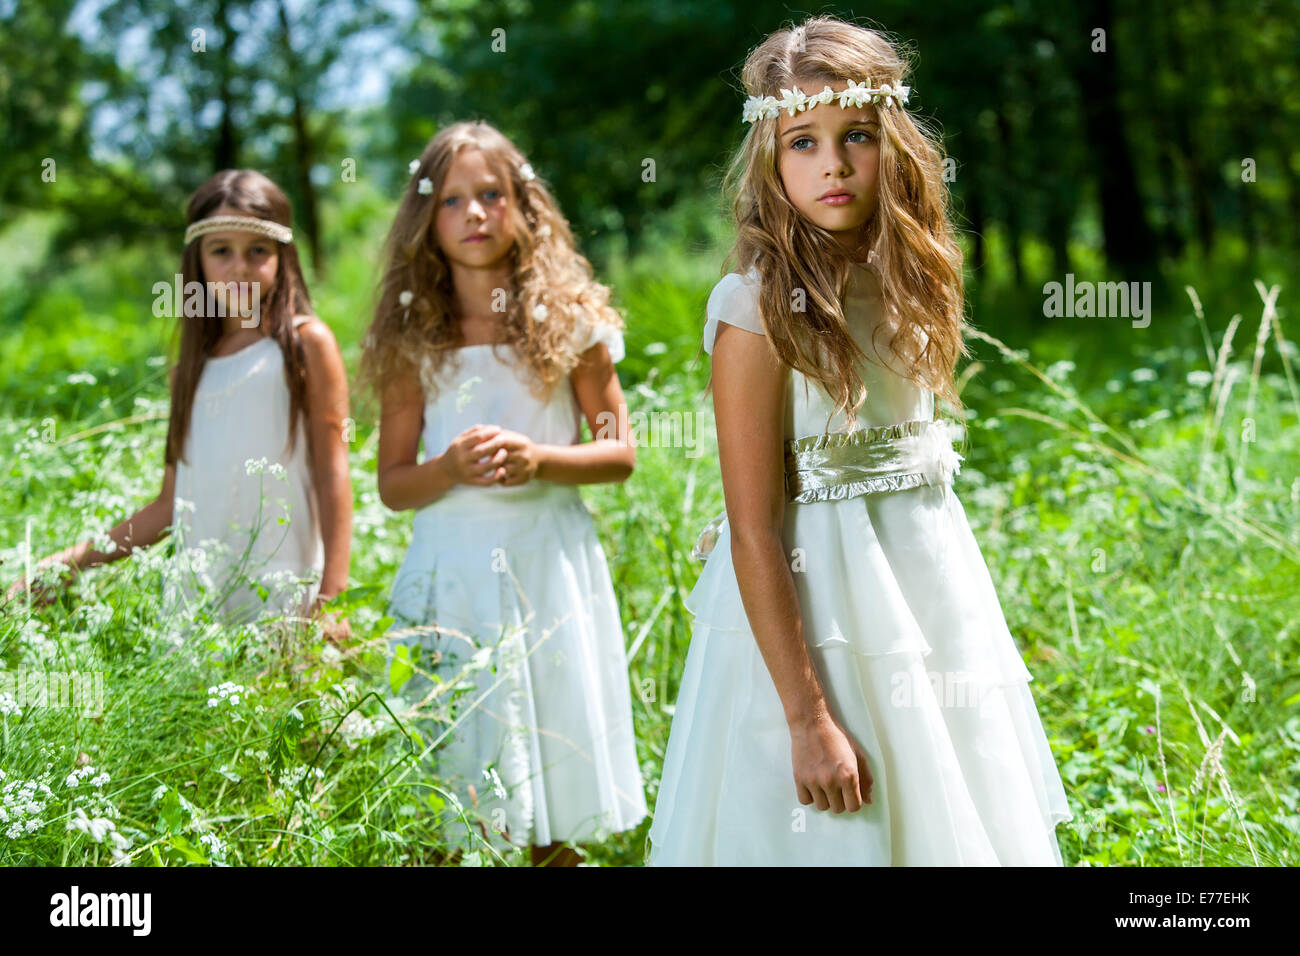 Portrait of three girl friends wearing white dresses in woods. - Stock Image